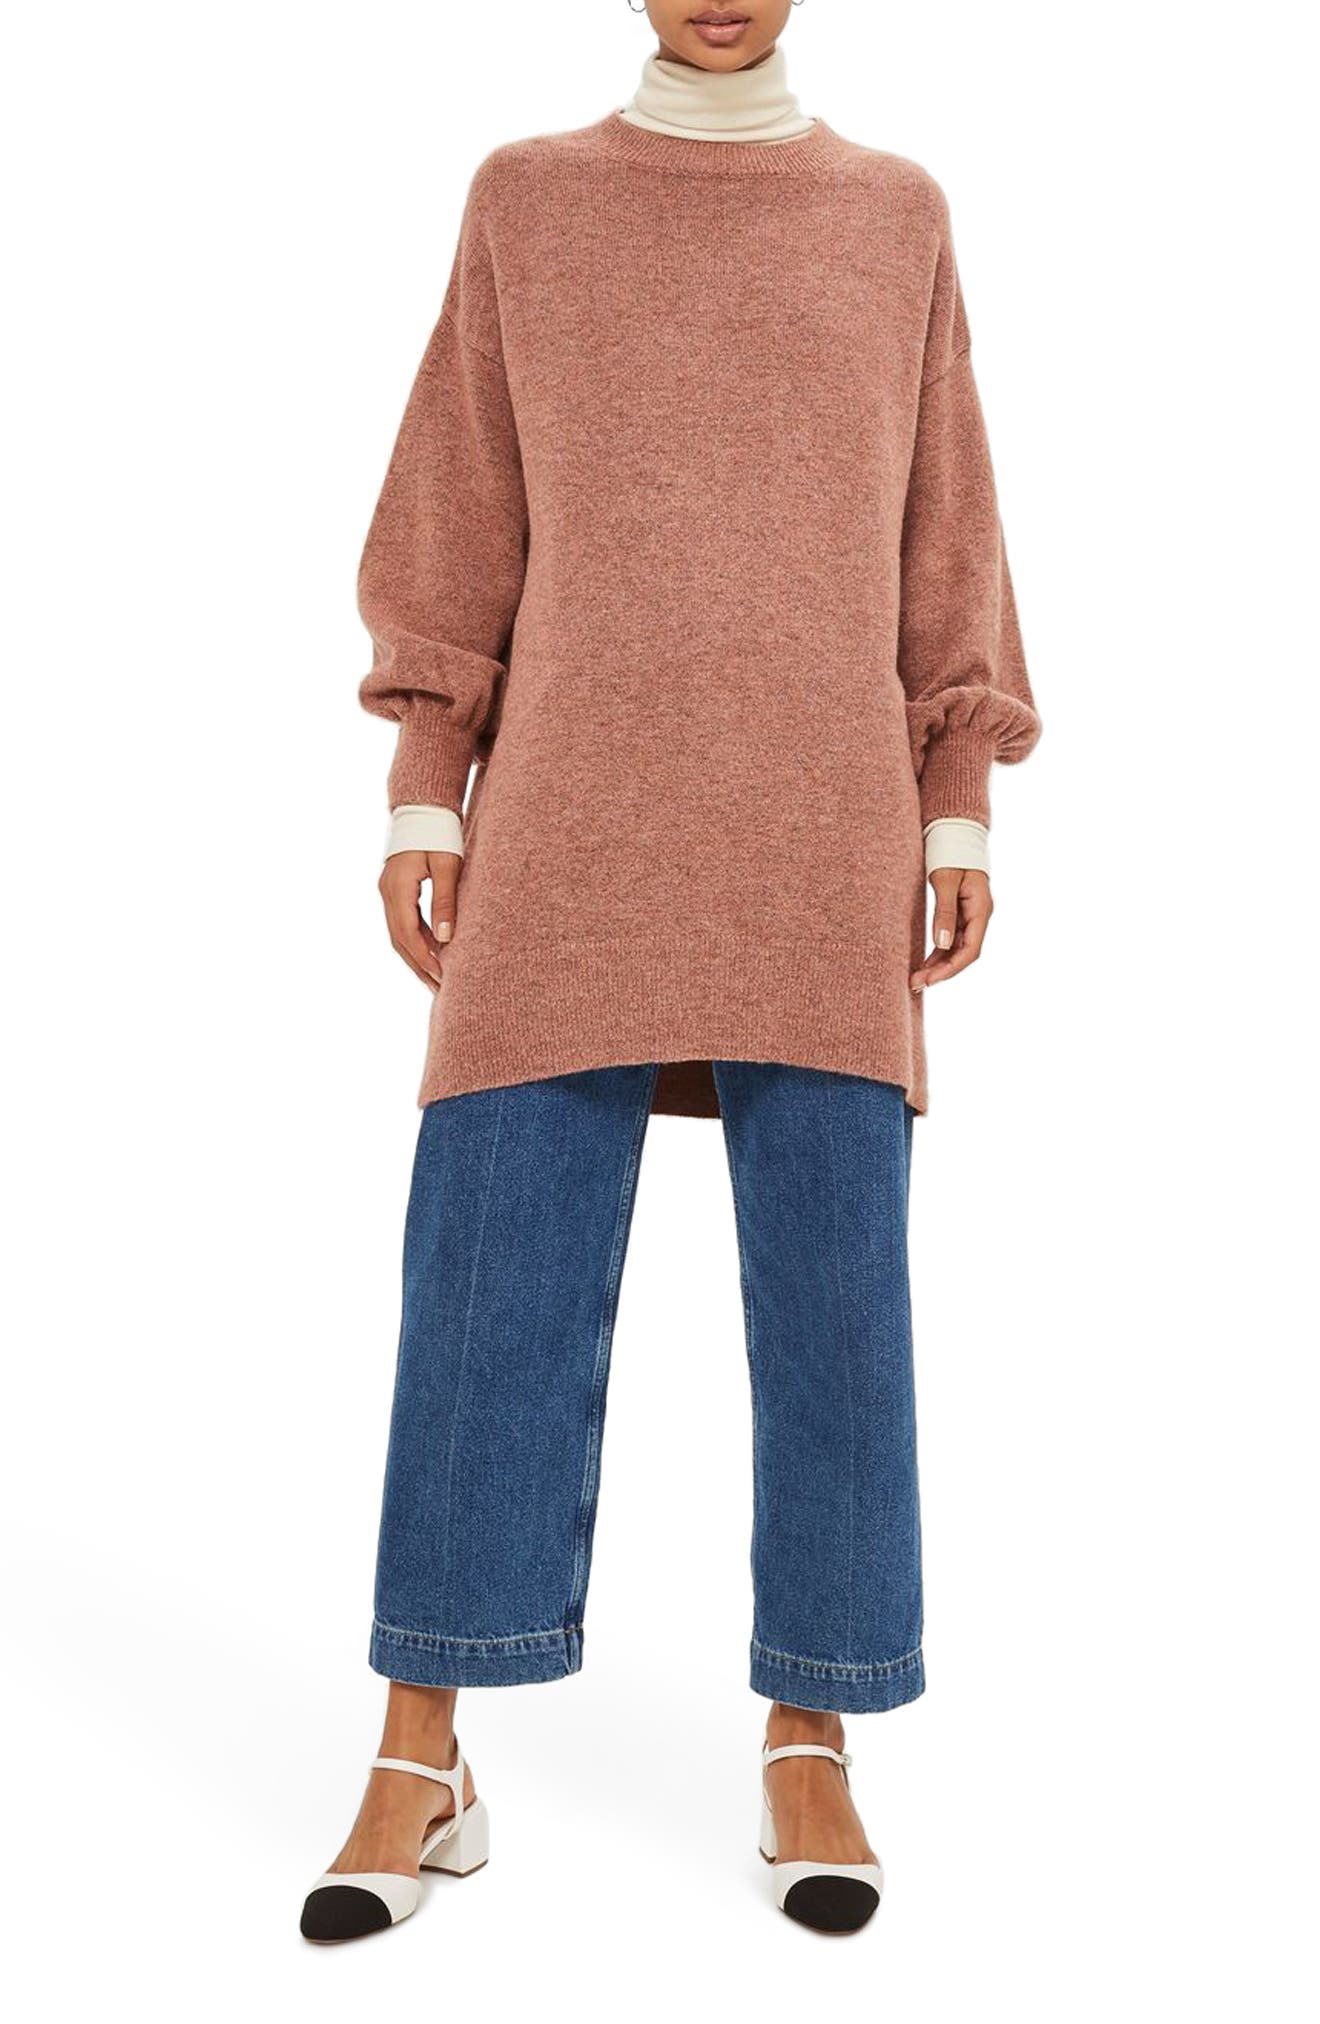 Alternate Image 1 Selected - Topshop Sweater Dress